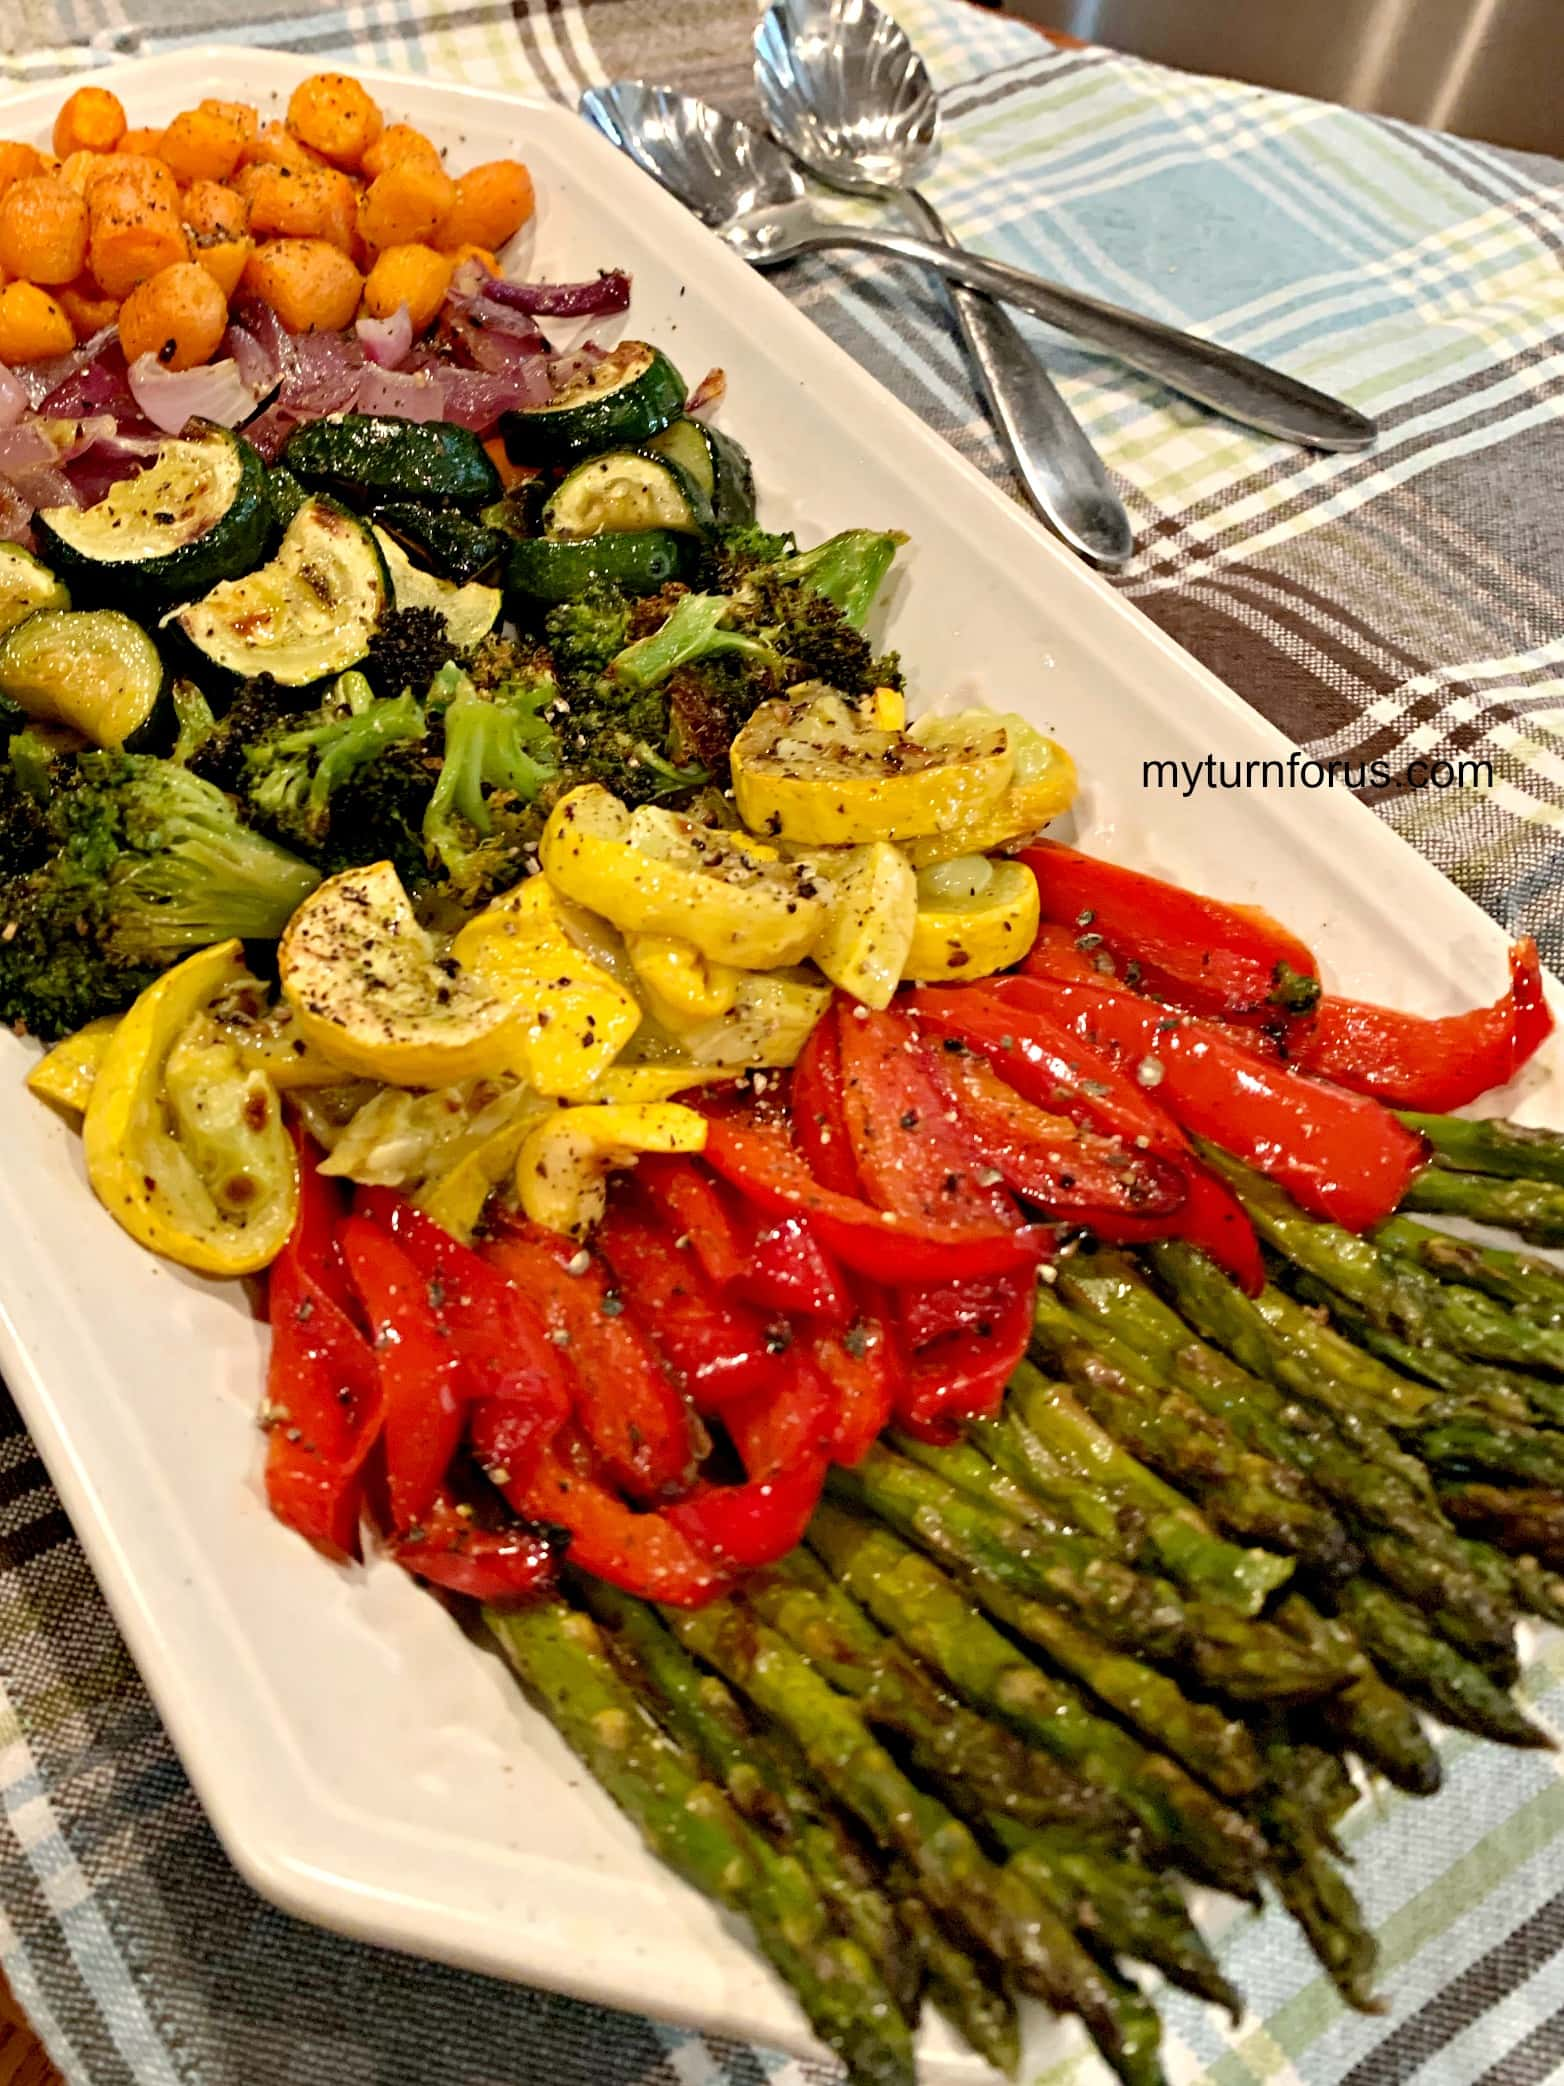 veggies for dinner, roasted vegetable platter, platter with roasted asparagus, bell pepper, squash, onions and carrots